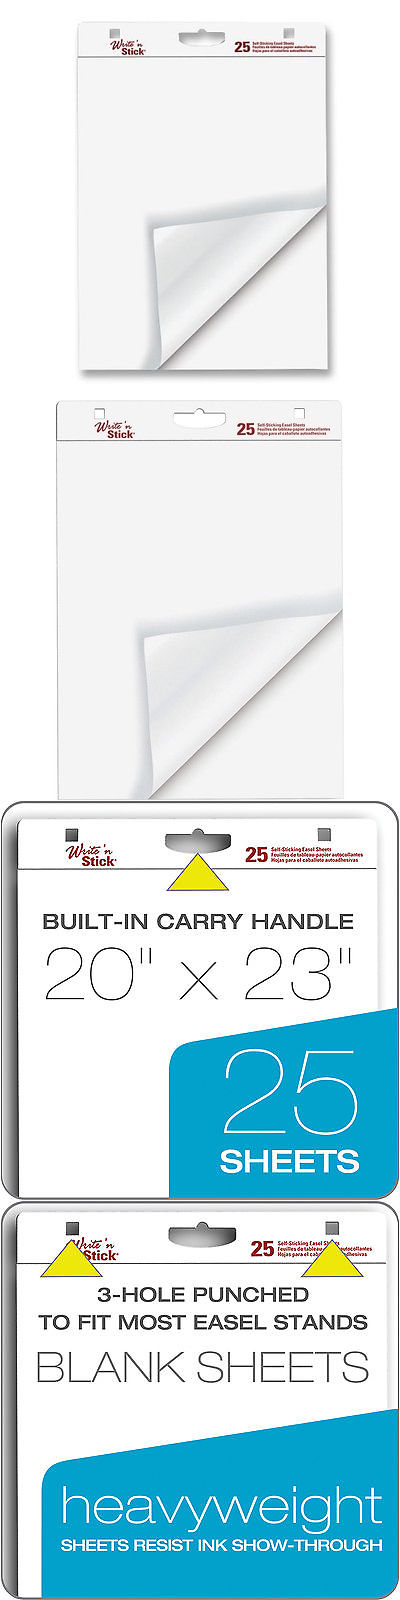 Art Paper 57208 Ampad Recycled Easel Pad - 50 Sheet - 27 X 34 - 2 - ebay spreadsheet